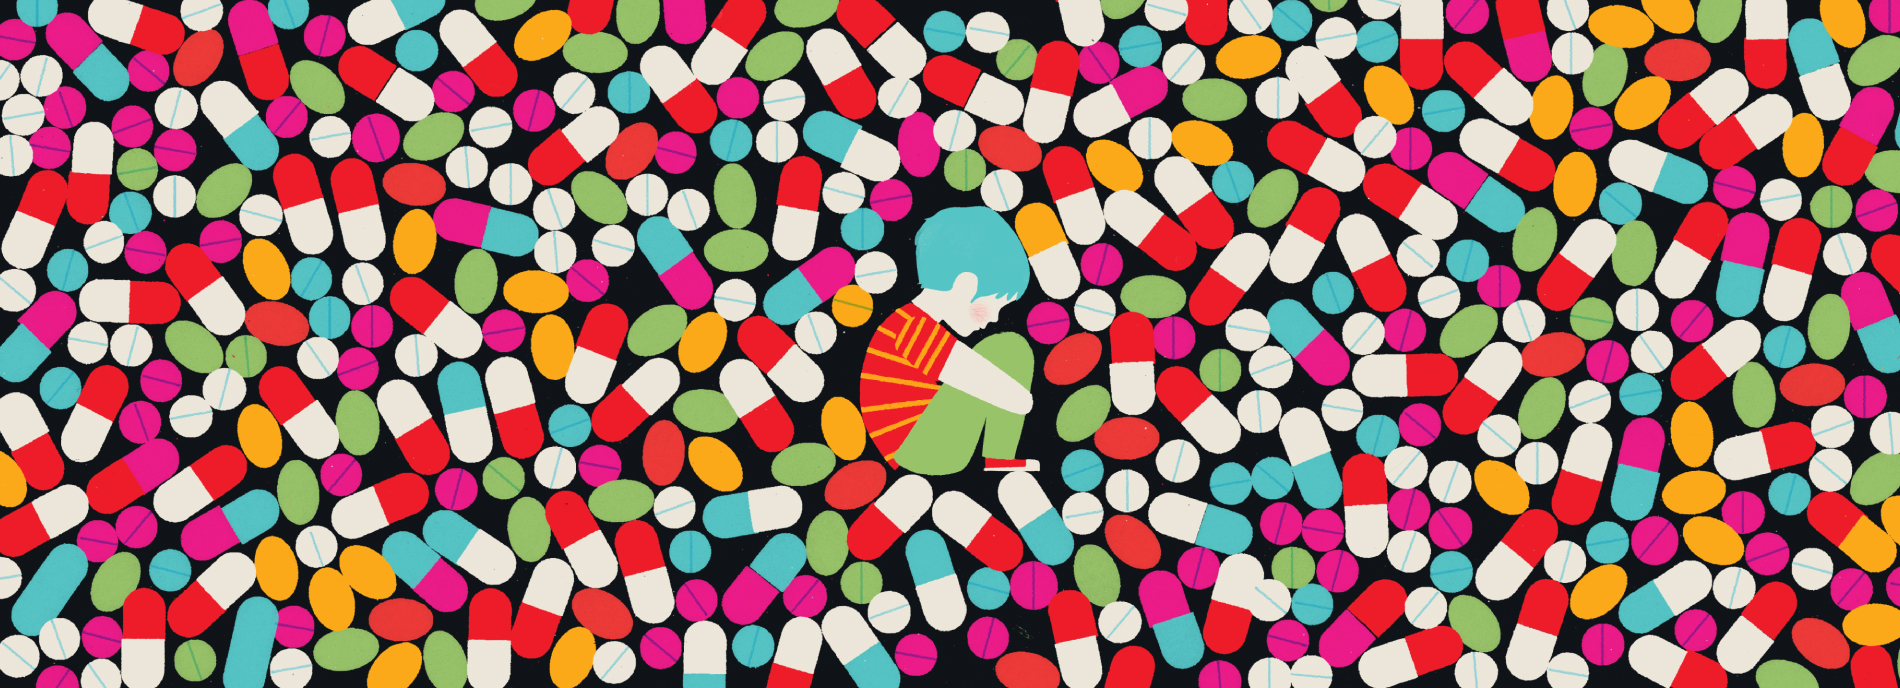 A small boy is surrounded by pills, evoking a sense that we are giving individuals on the spectrum too many psychiatric drugs.